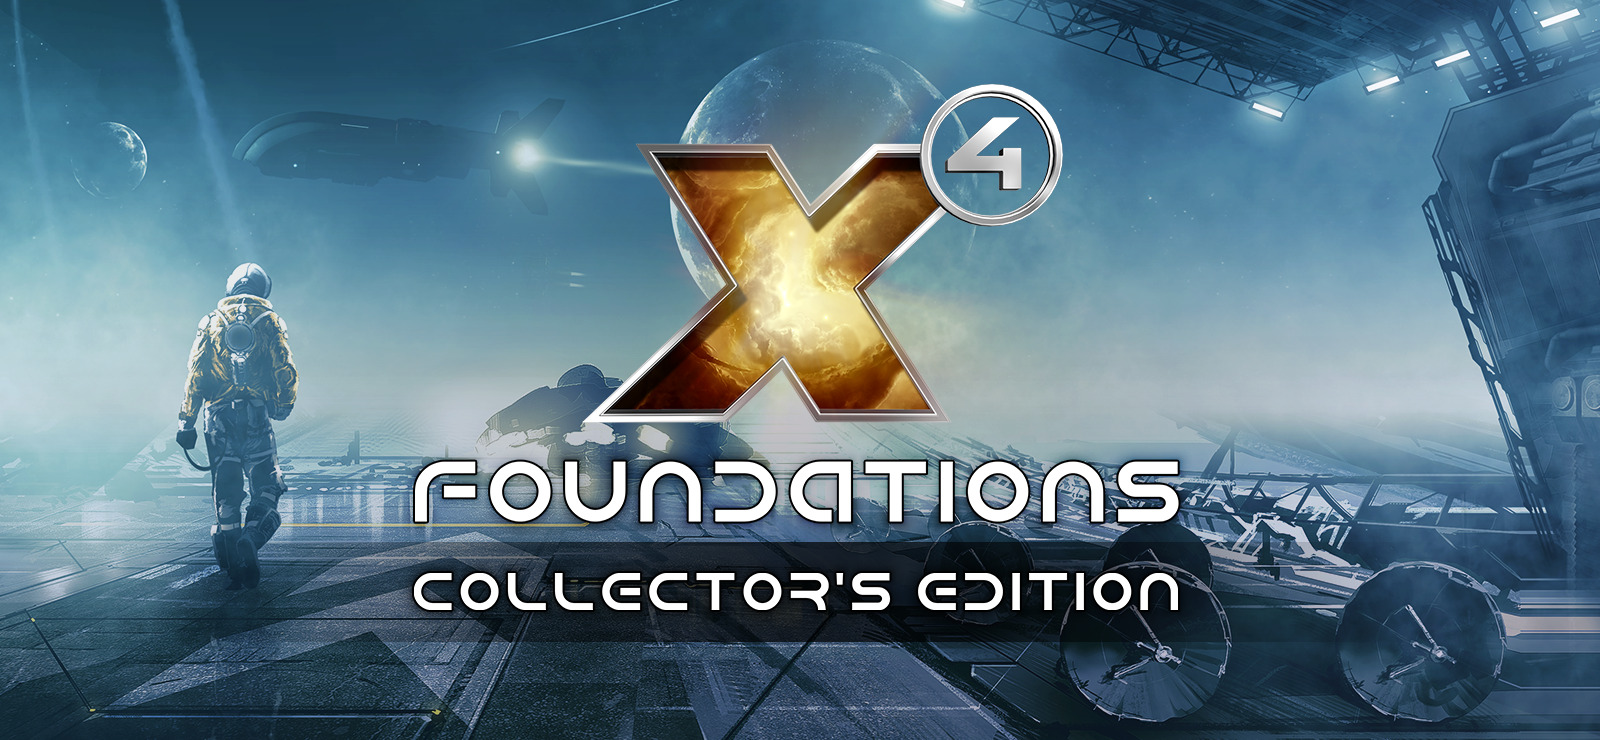 X4: Foundations Collector's Edition GOG скачать последнюю